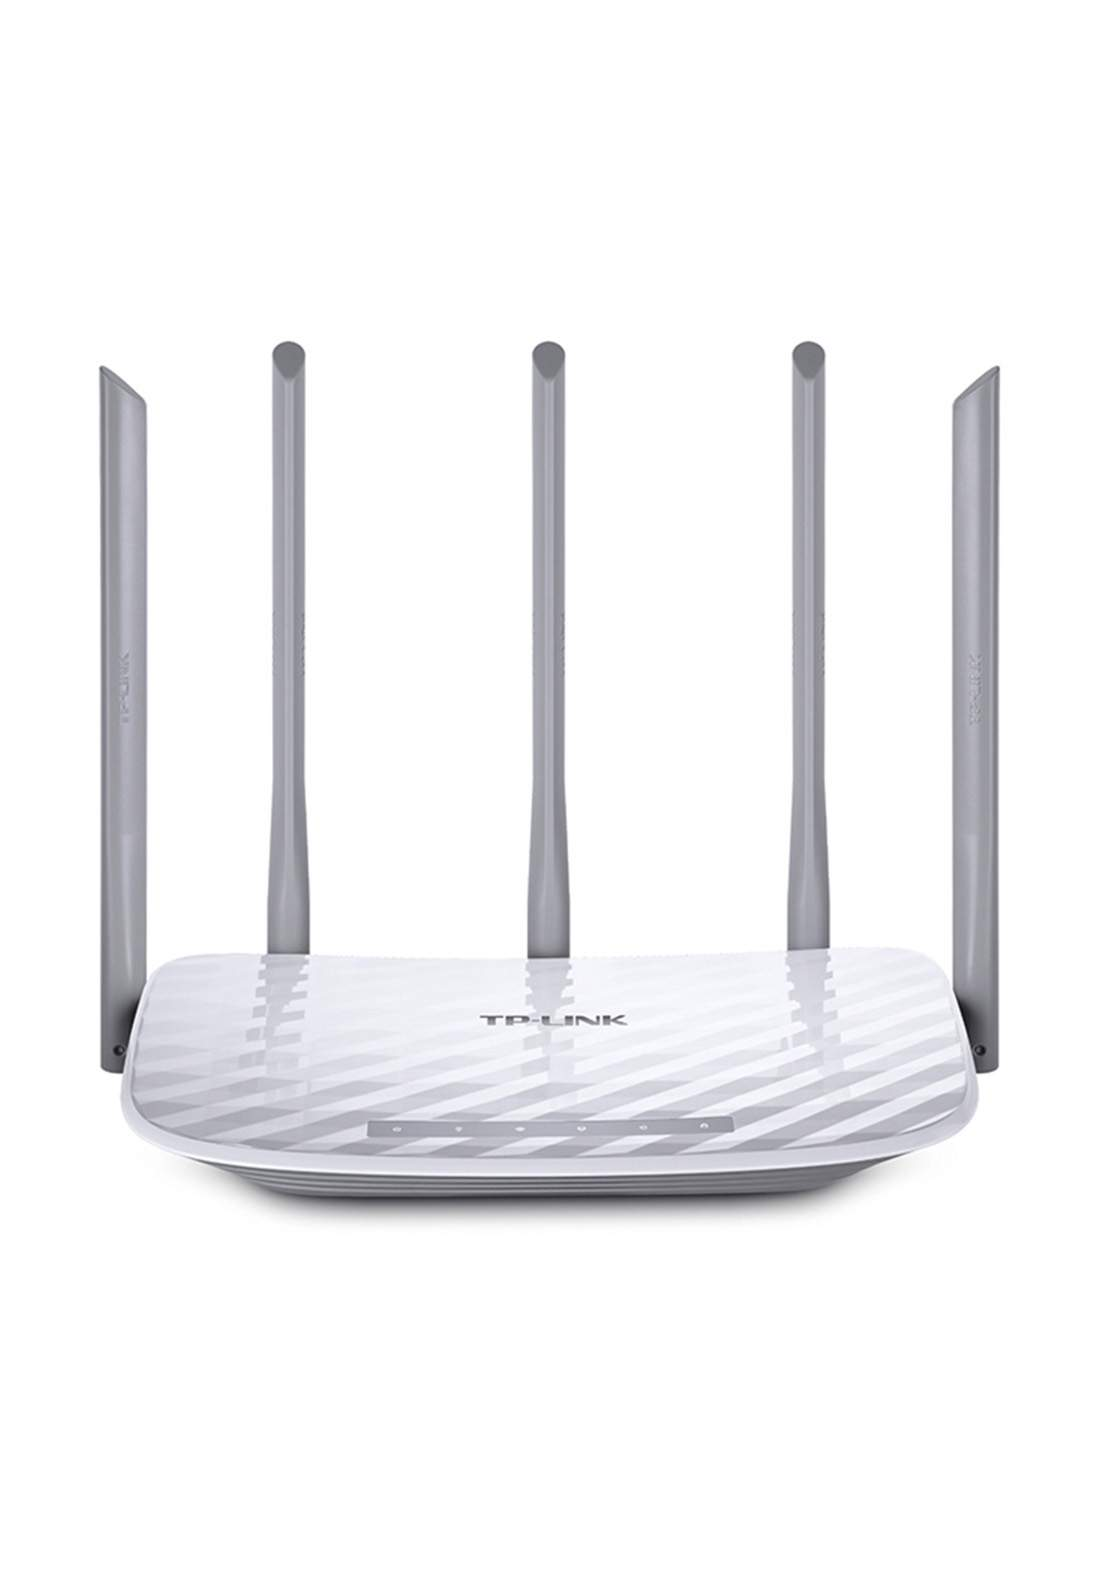 TP-LINK  Archer C60 AC1350 Wireless Dual Band Router -White راوتر